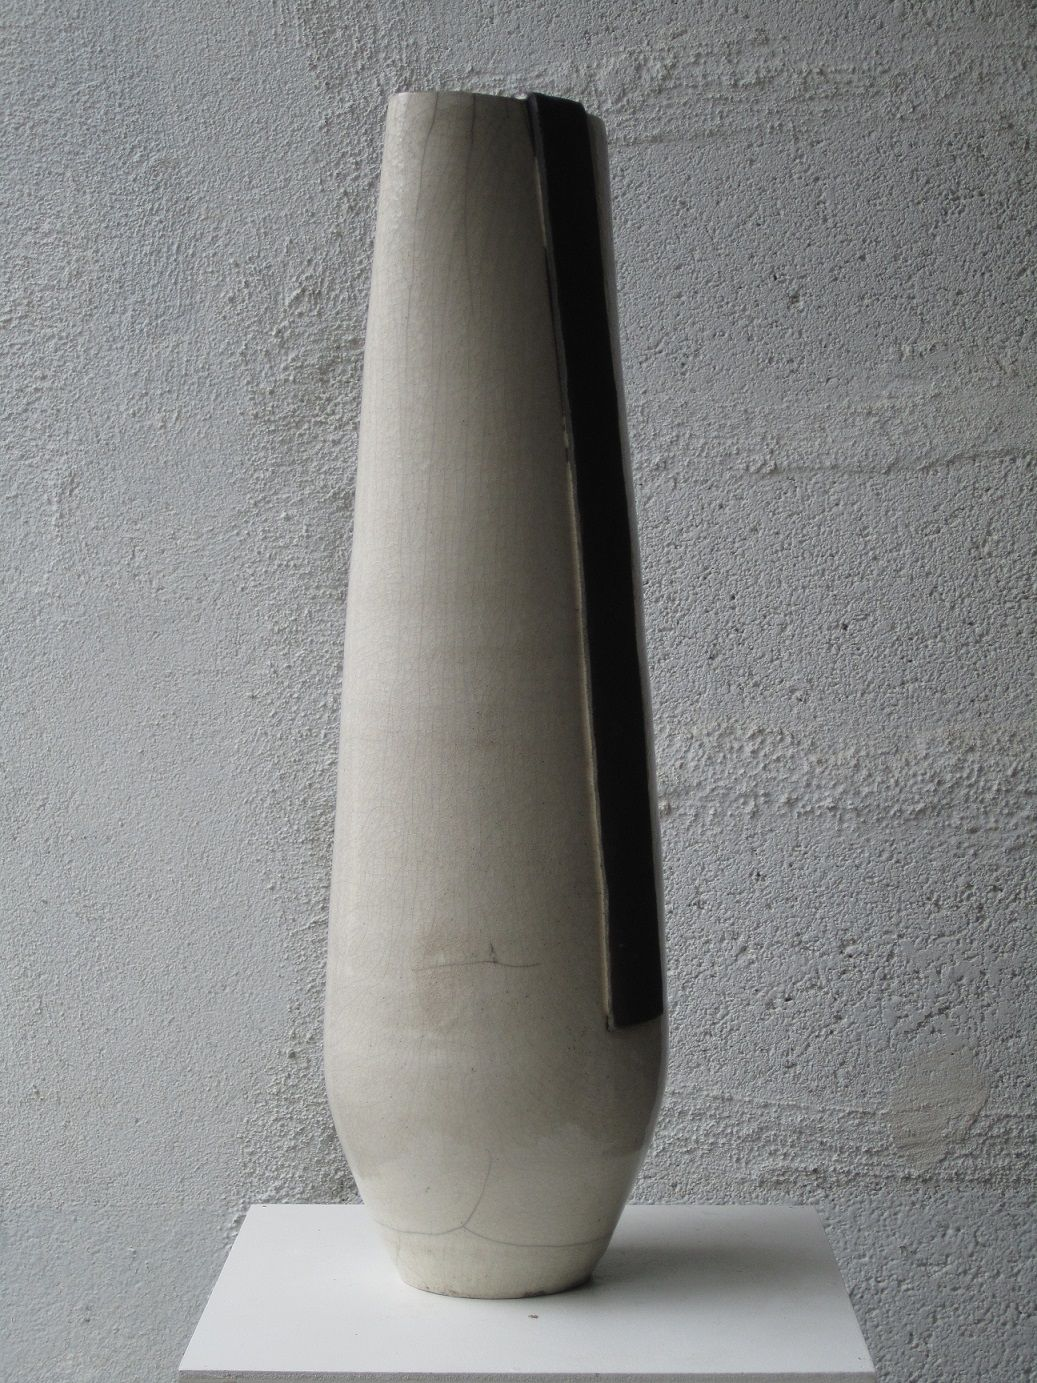 Péribole,Tien Wen,Sculpture contemporaine, detail 3